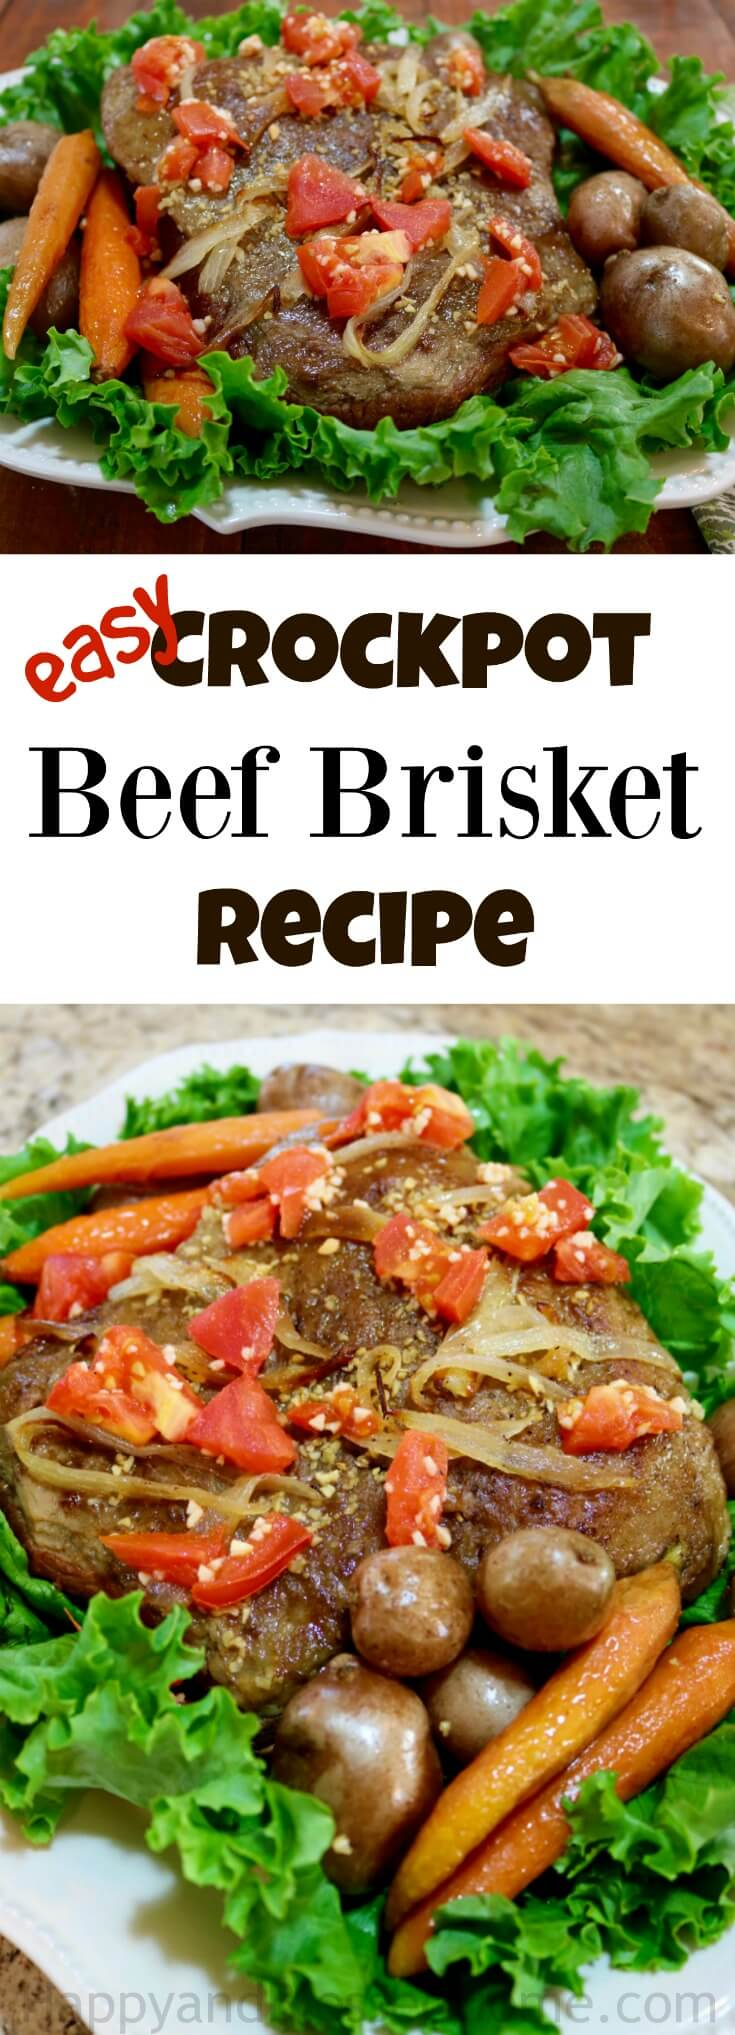 Easy Crockpot Beef Brisket Recipe you can make in your slow cooker